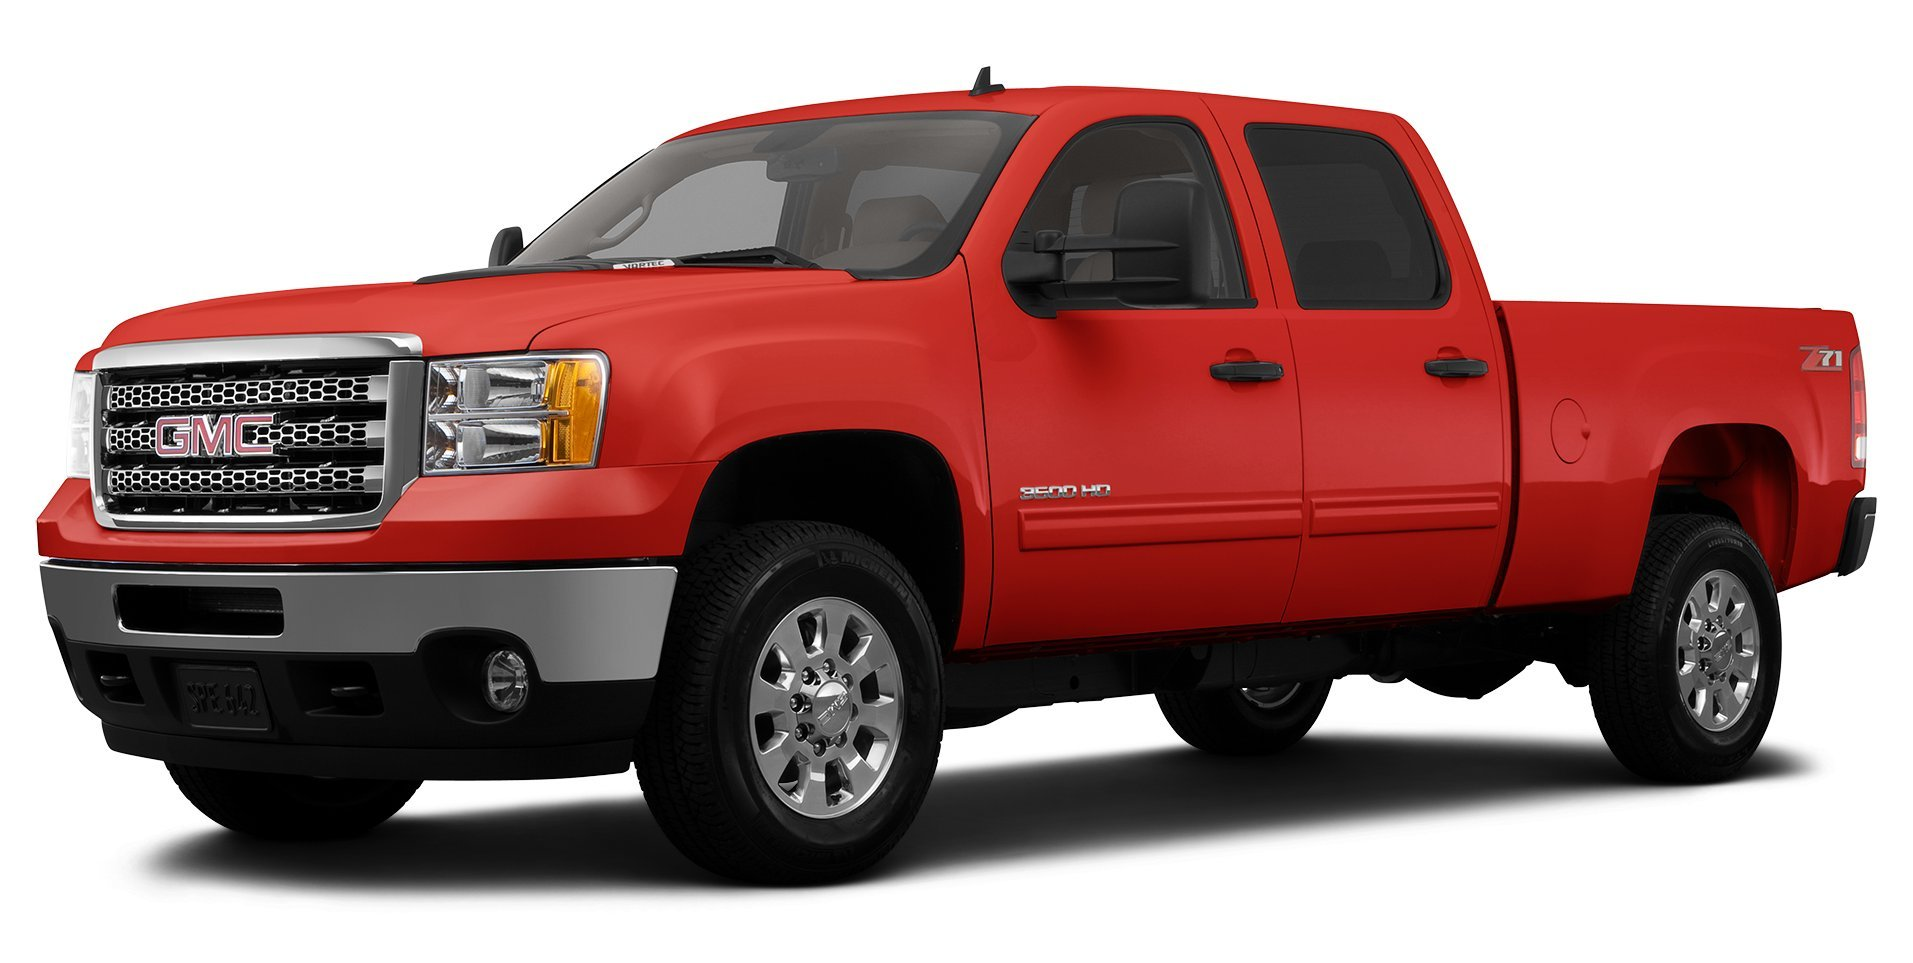 2013 chevrolet avalanche reviews images and. Black Bedroom Furniture Sets. Home Design Ideas